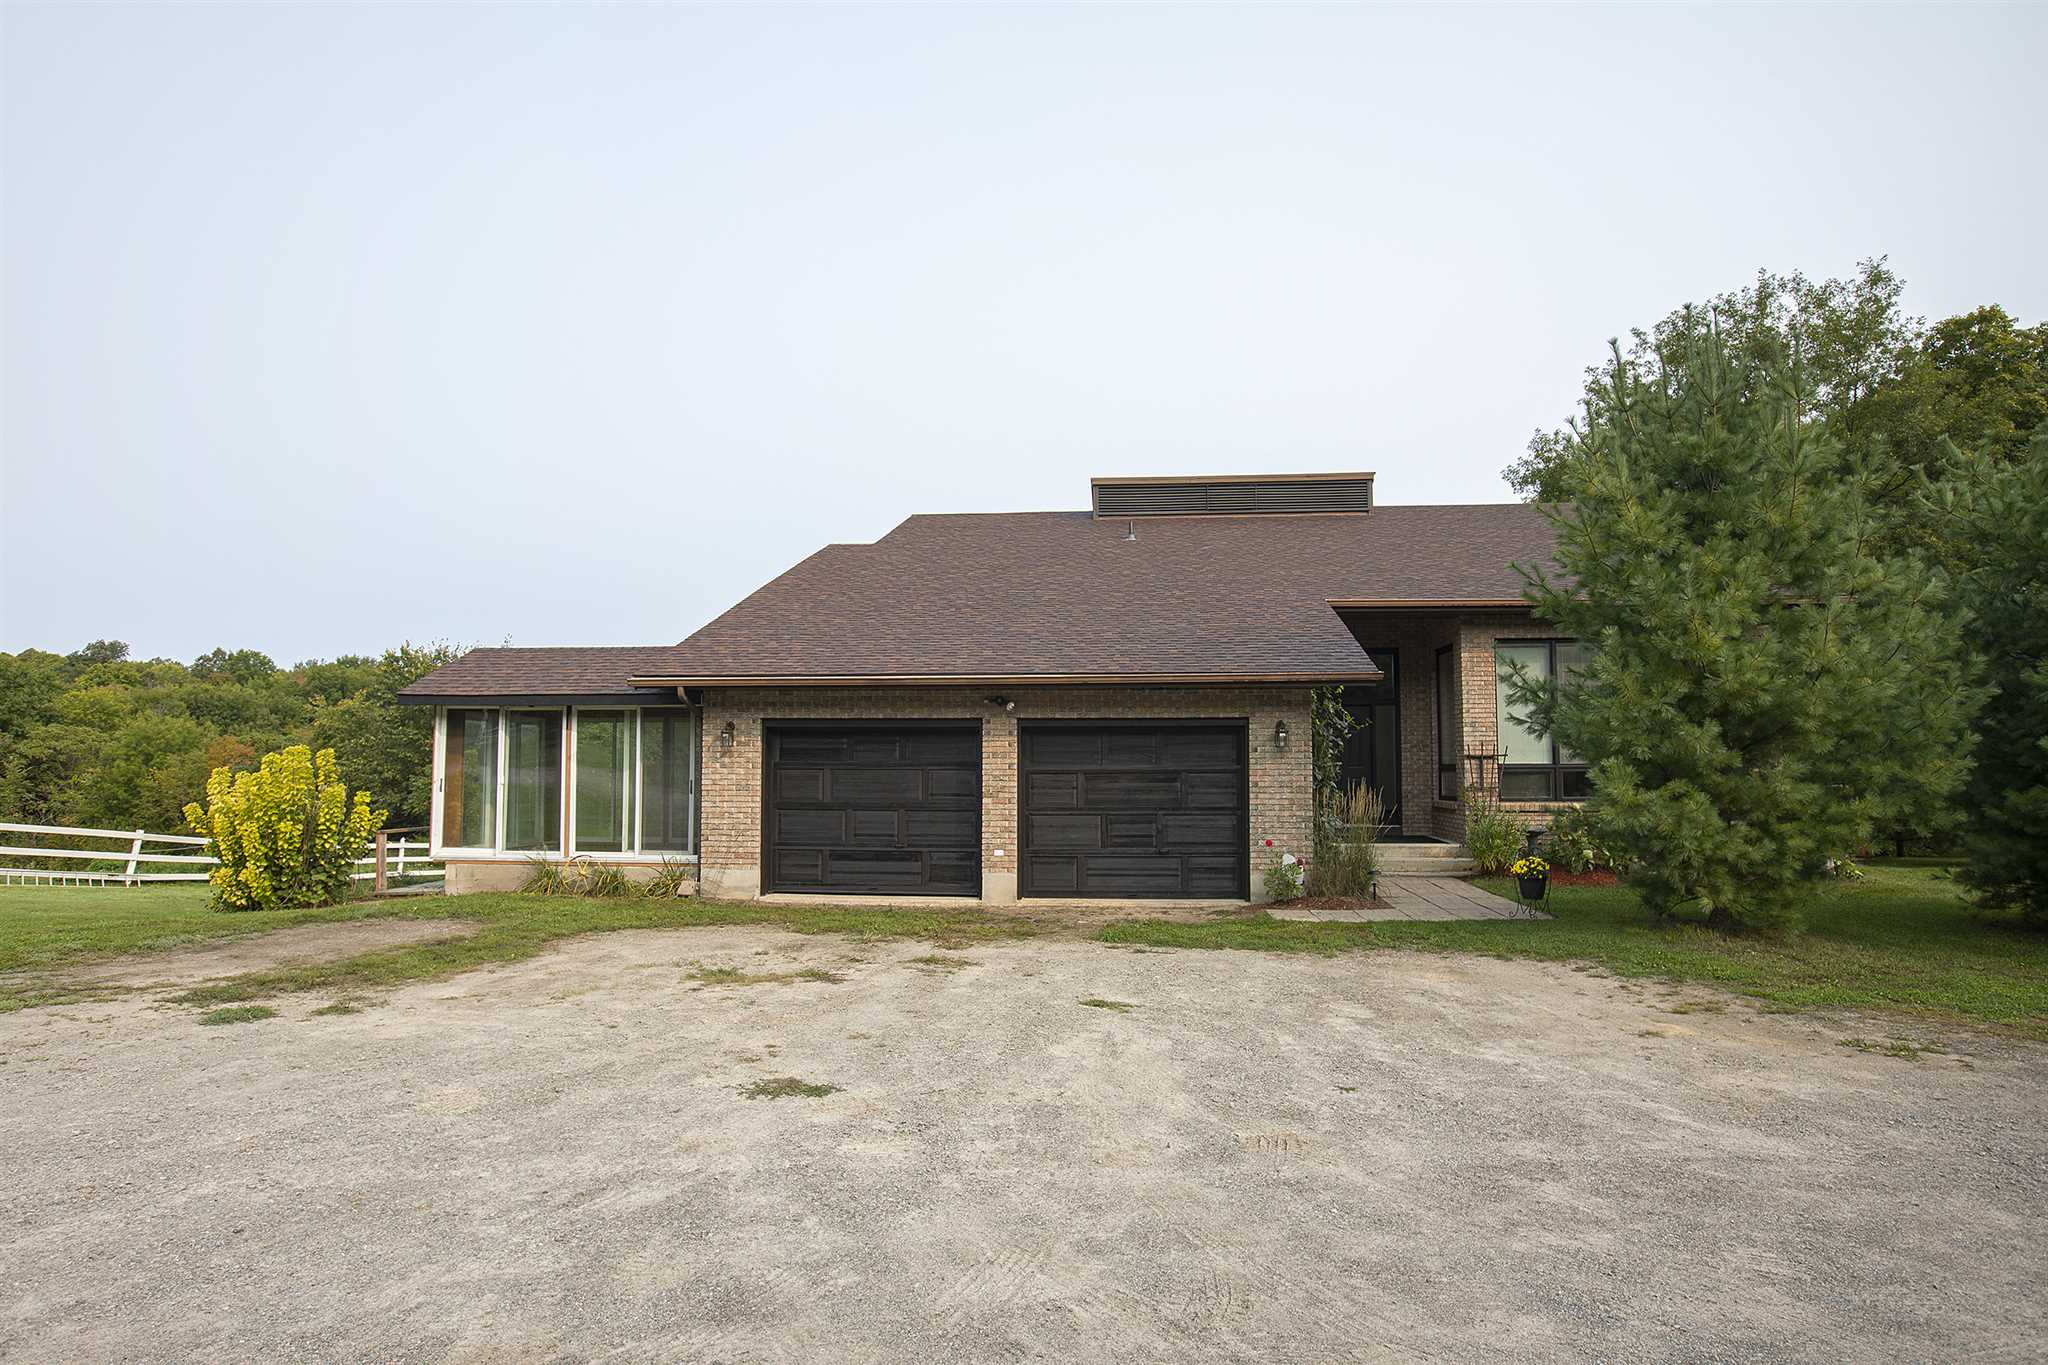 292 Back Street, Leeds & 1000 Islands Township, Ontario, Canada